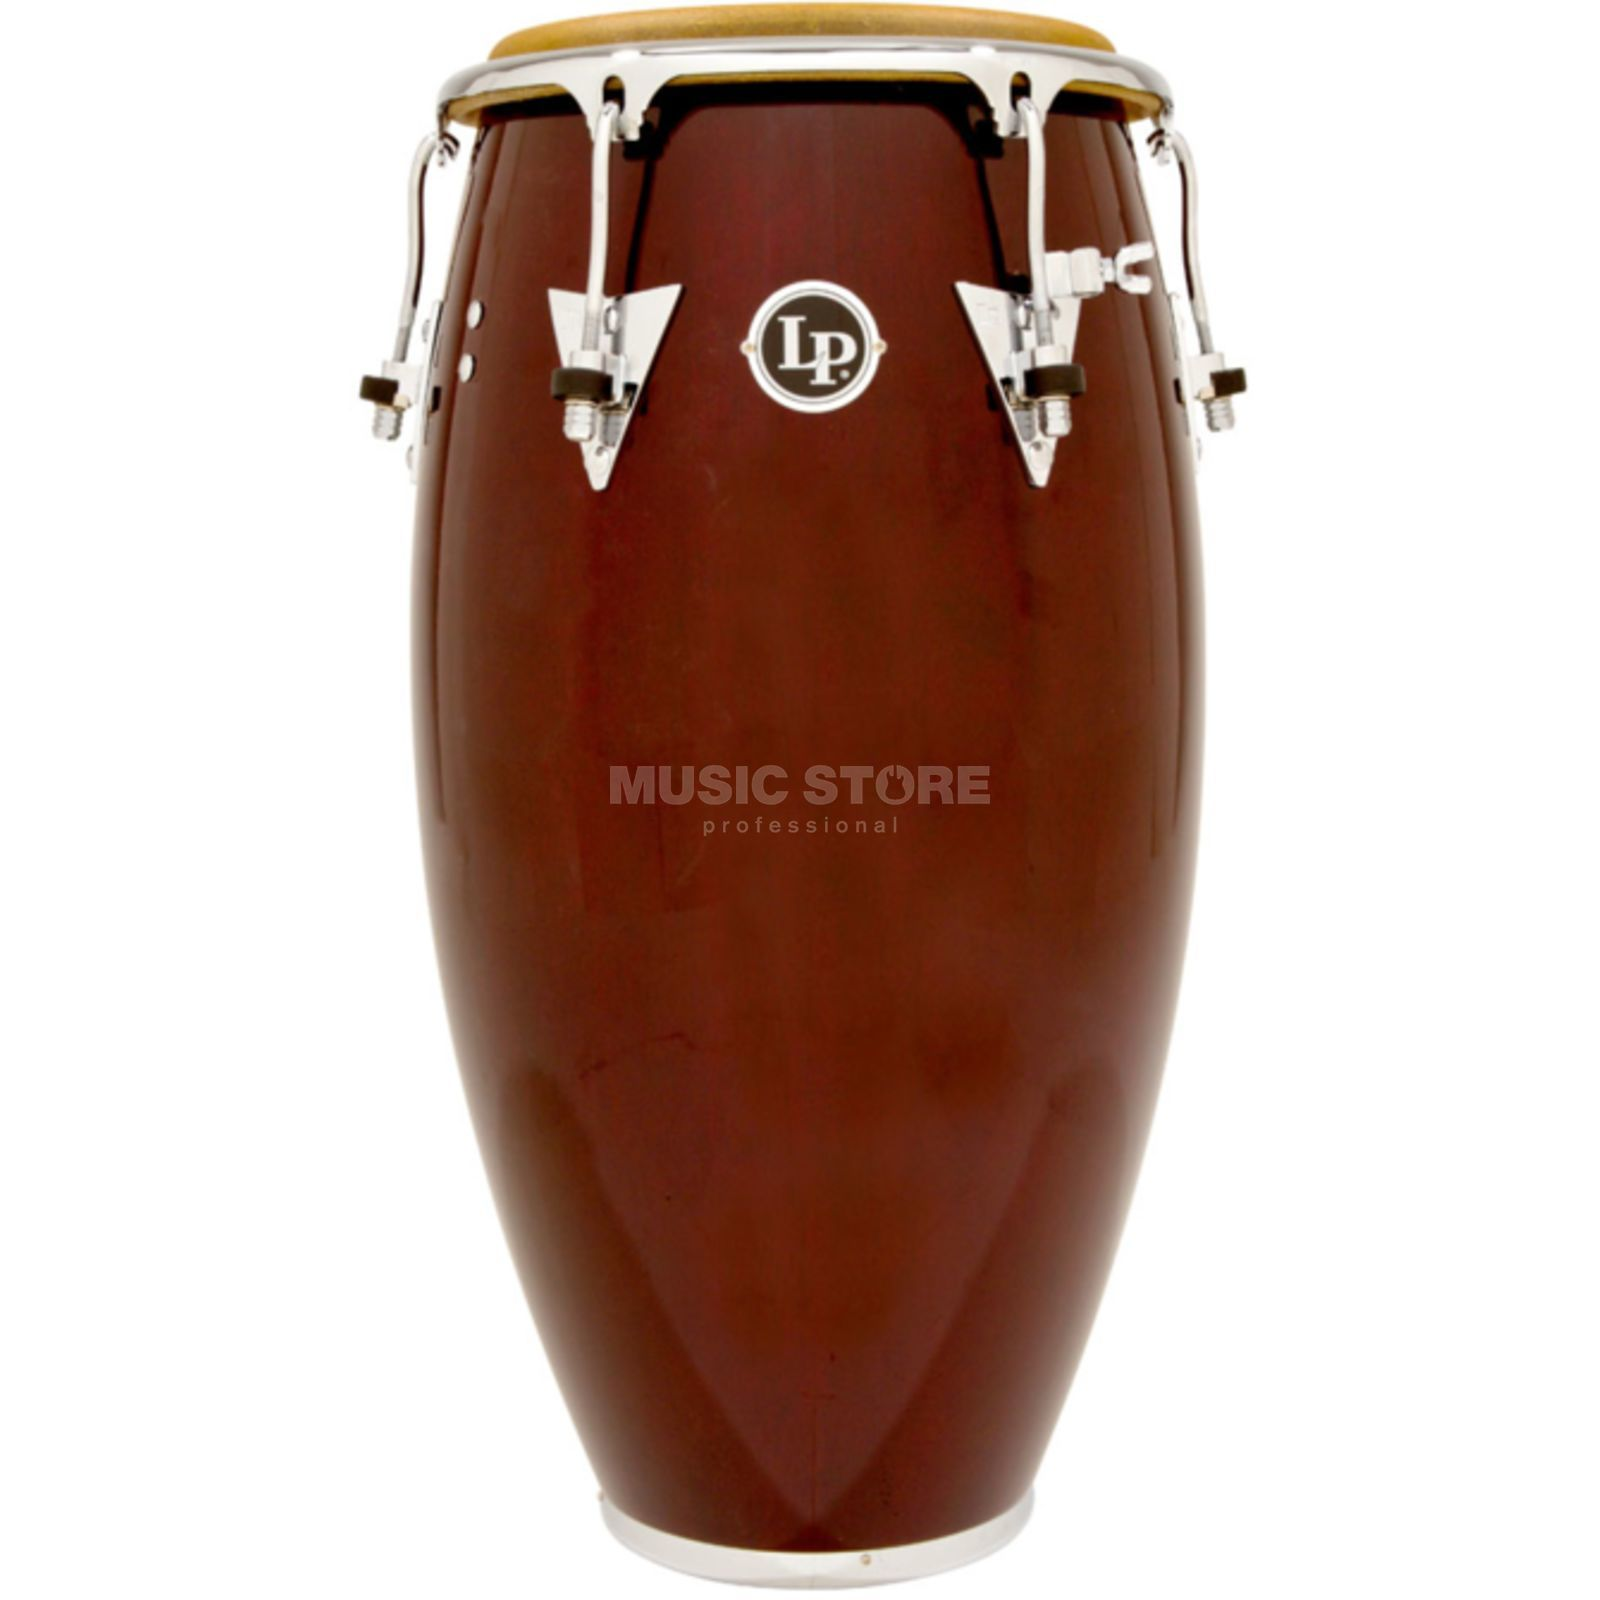 "Latin Percussion Classic Conga LP559X-DW 11 3/4"" Conga, Wine red Product Image"